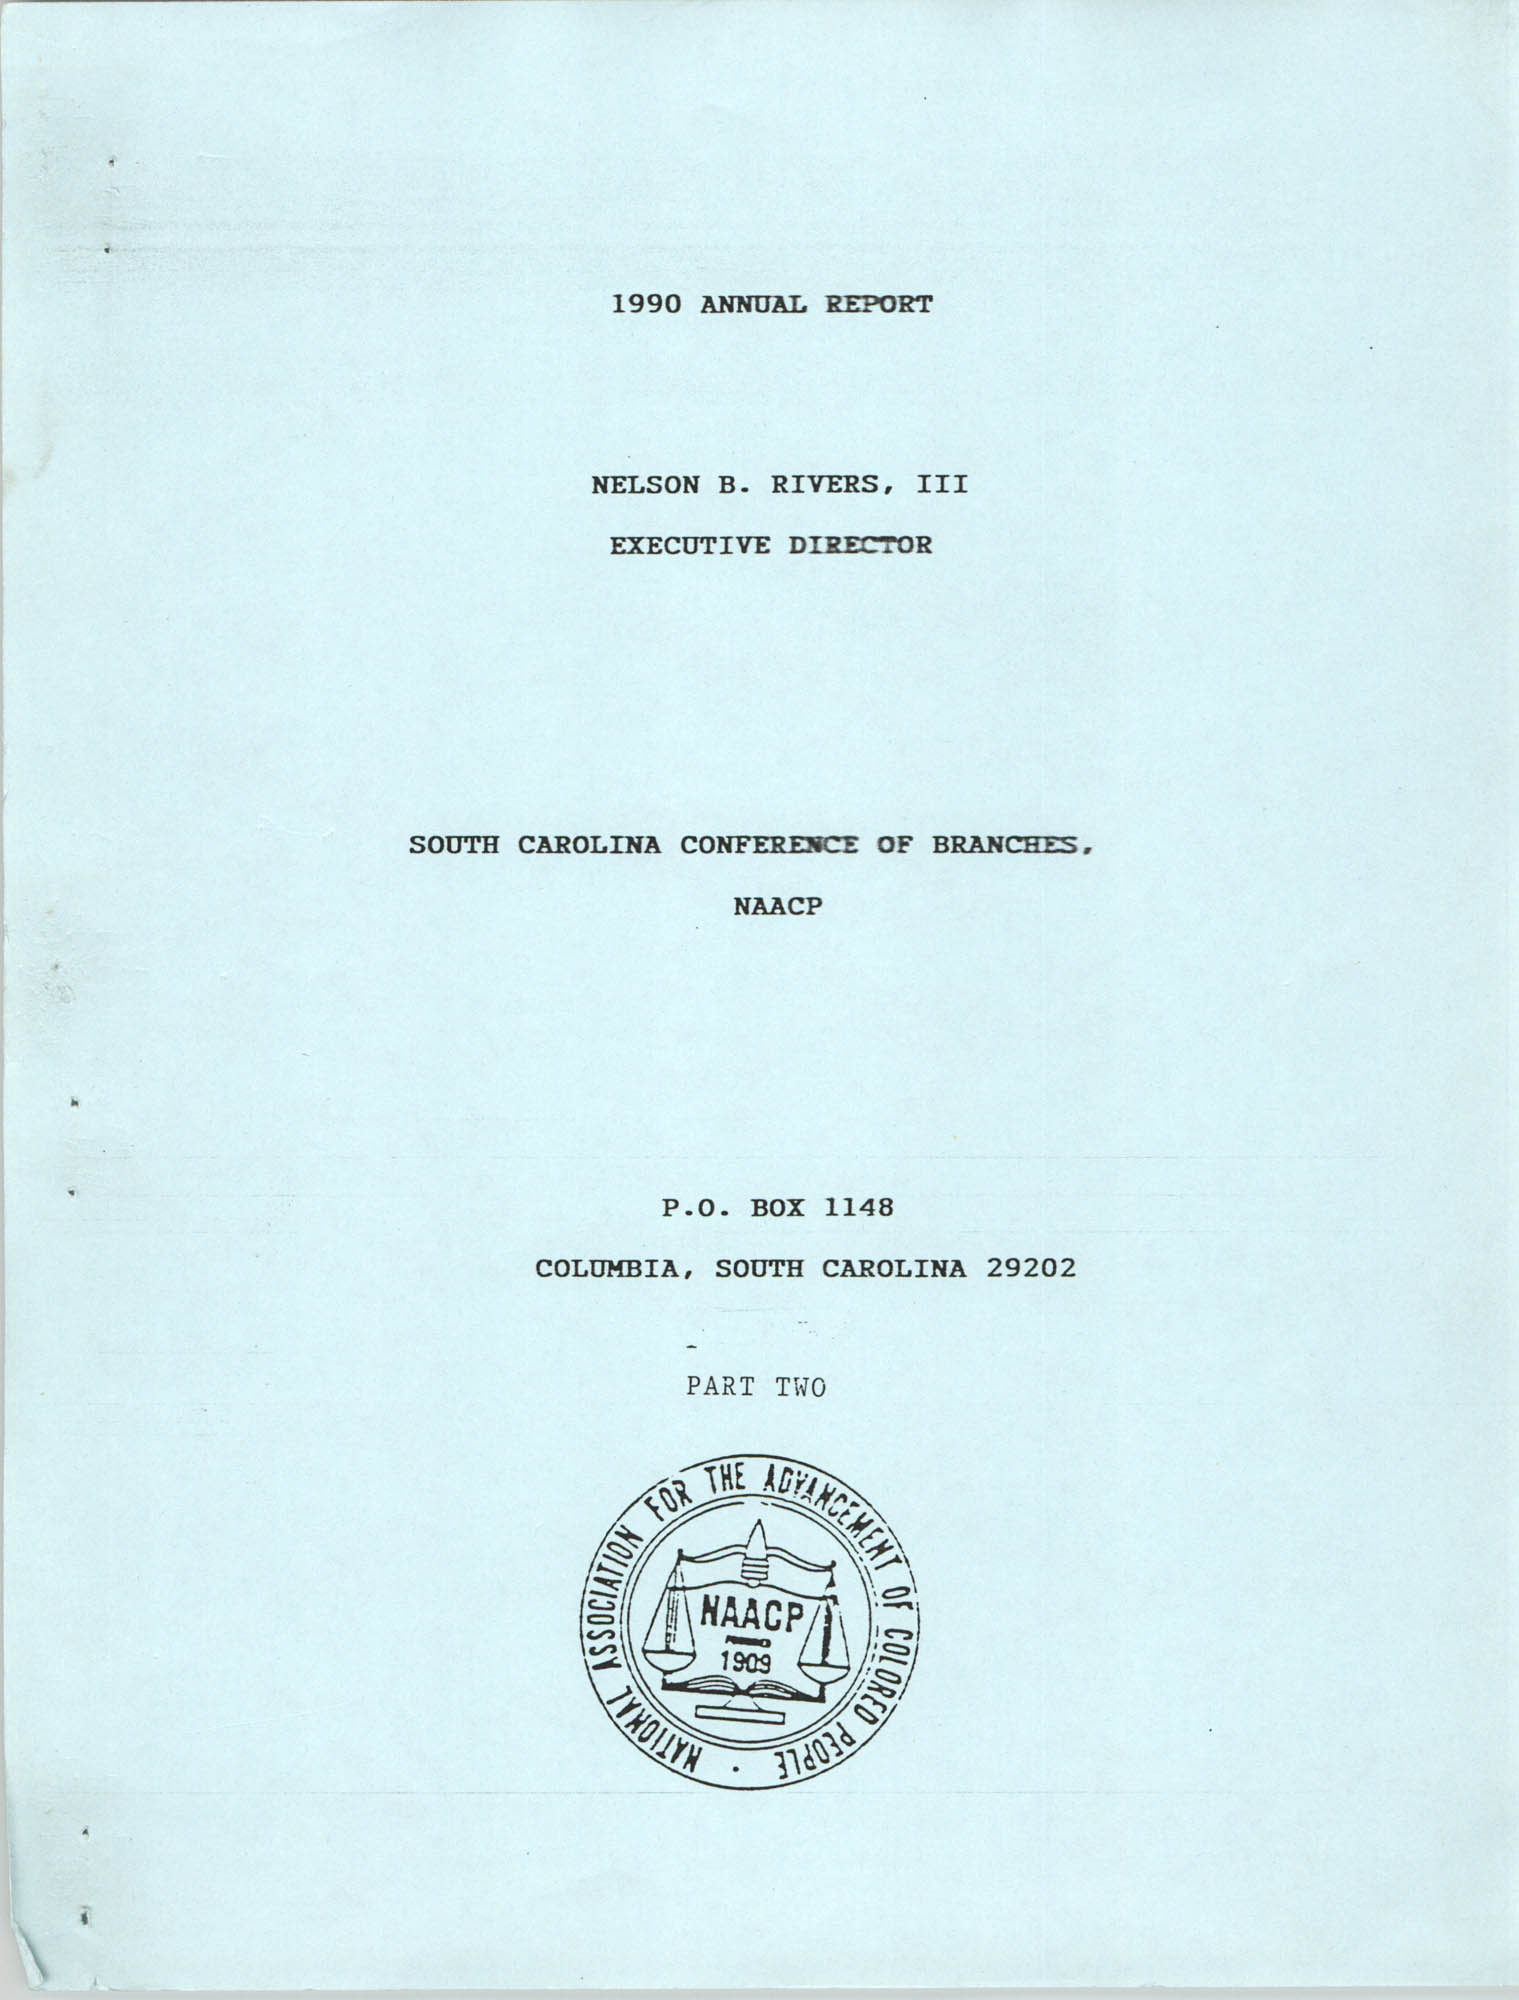 South Carolina Conference of Branches of the NAACP, 1990 Annual Report, Part Two, Front Cover